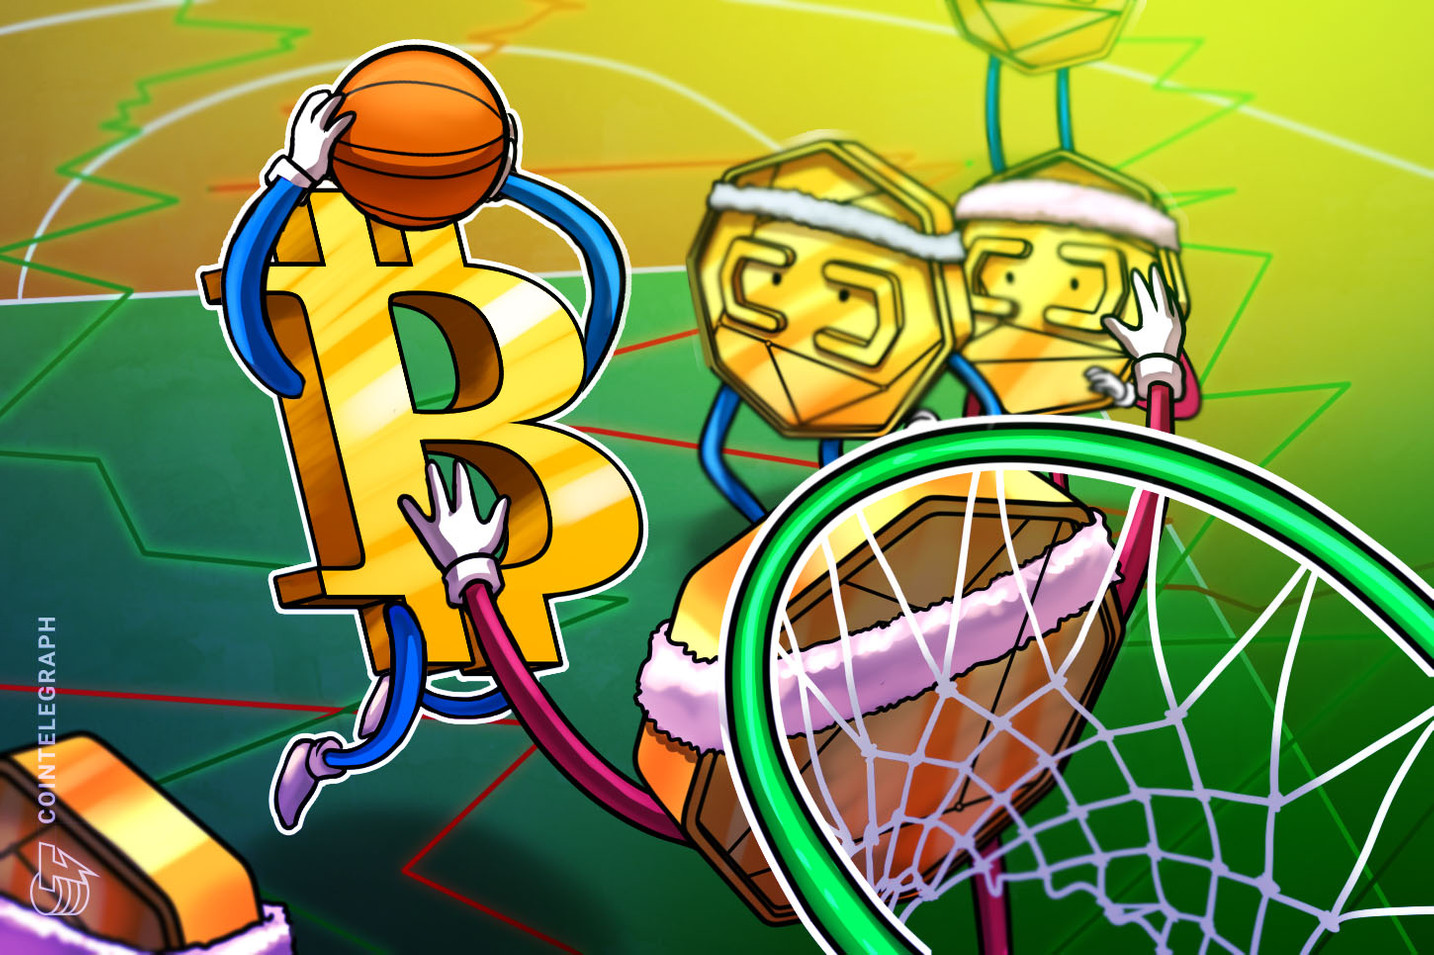 El gerente general del equipo de baloncesto Houston Rockets es optimista respecto a bitcoin